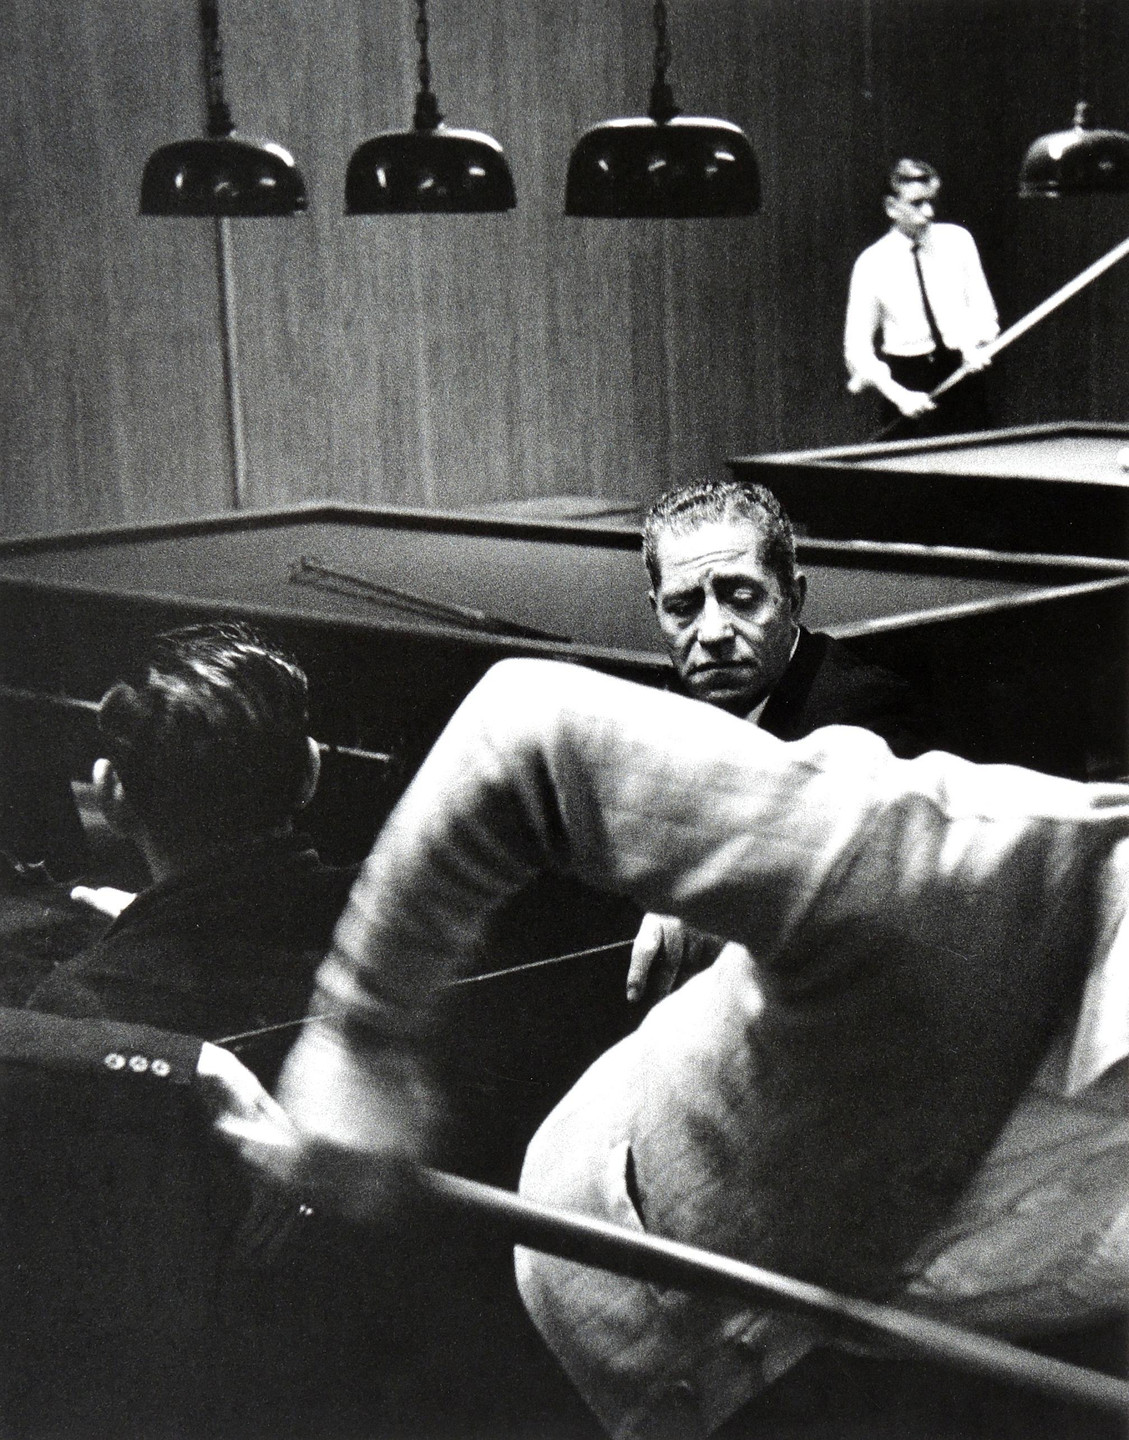 Julio Mitchel. Pool Room, New York. 1962